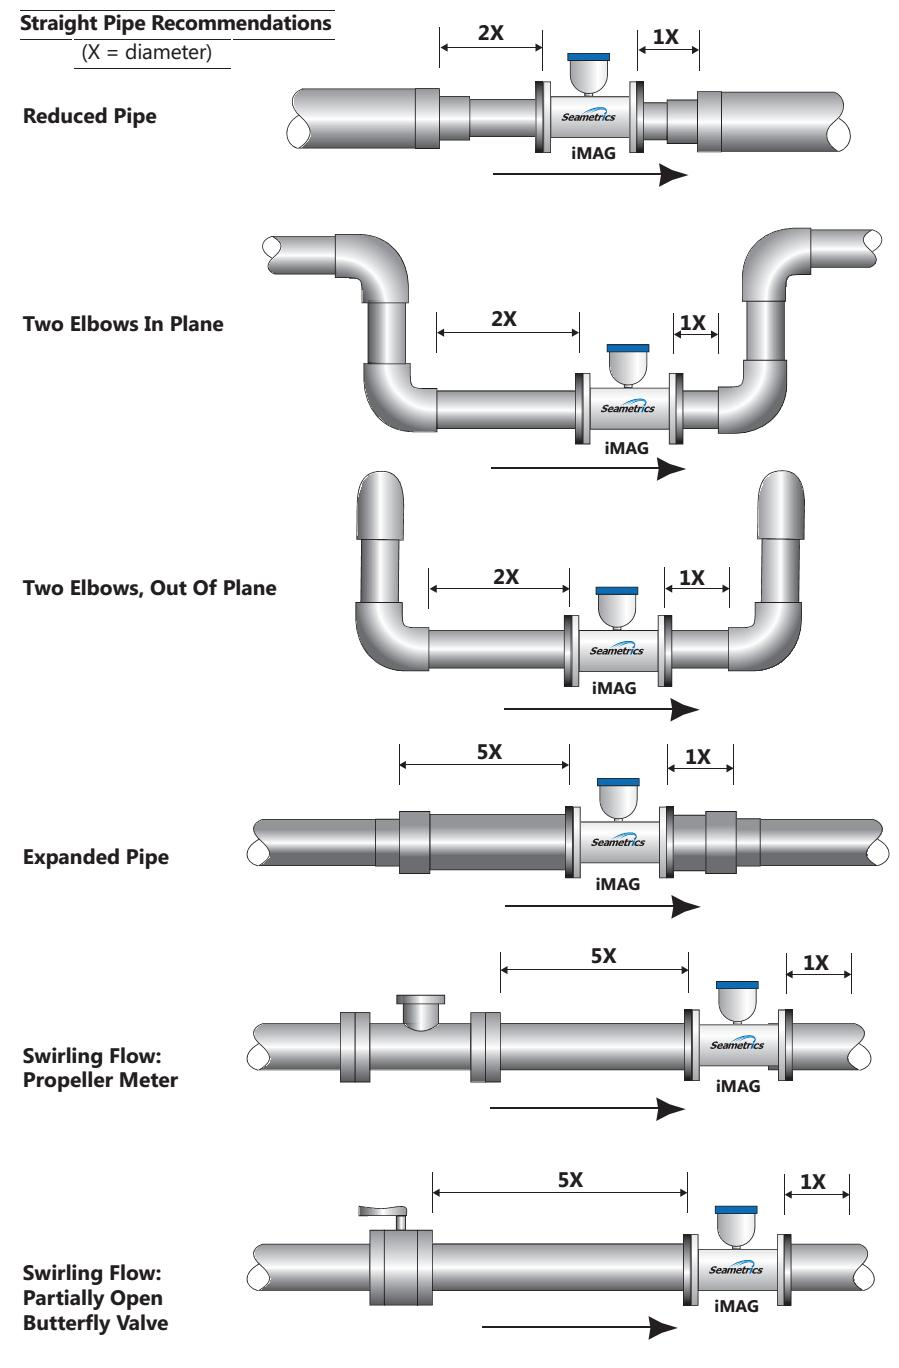 Straight Pipe Schematic Wiring Diagrams Schematics He3t Magnetic Flow Meter Imag Series Seametrics Wiratama Clock Diogram Ngl Storage And Transfer